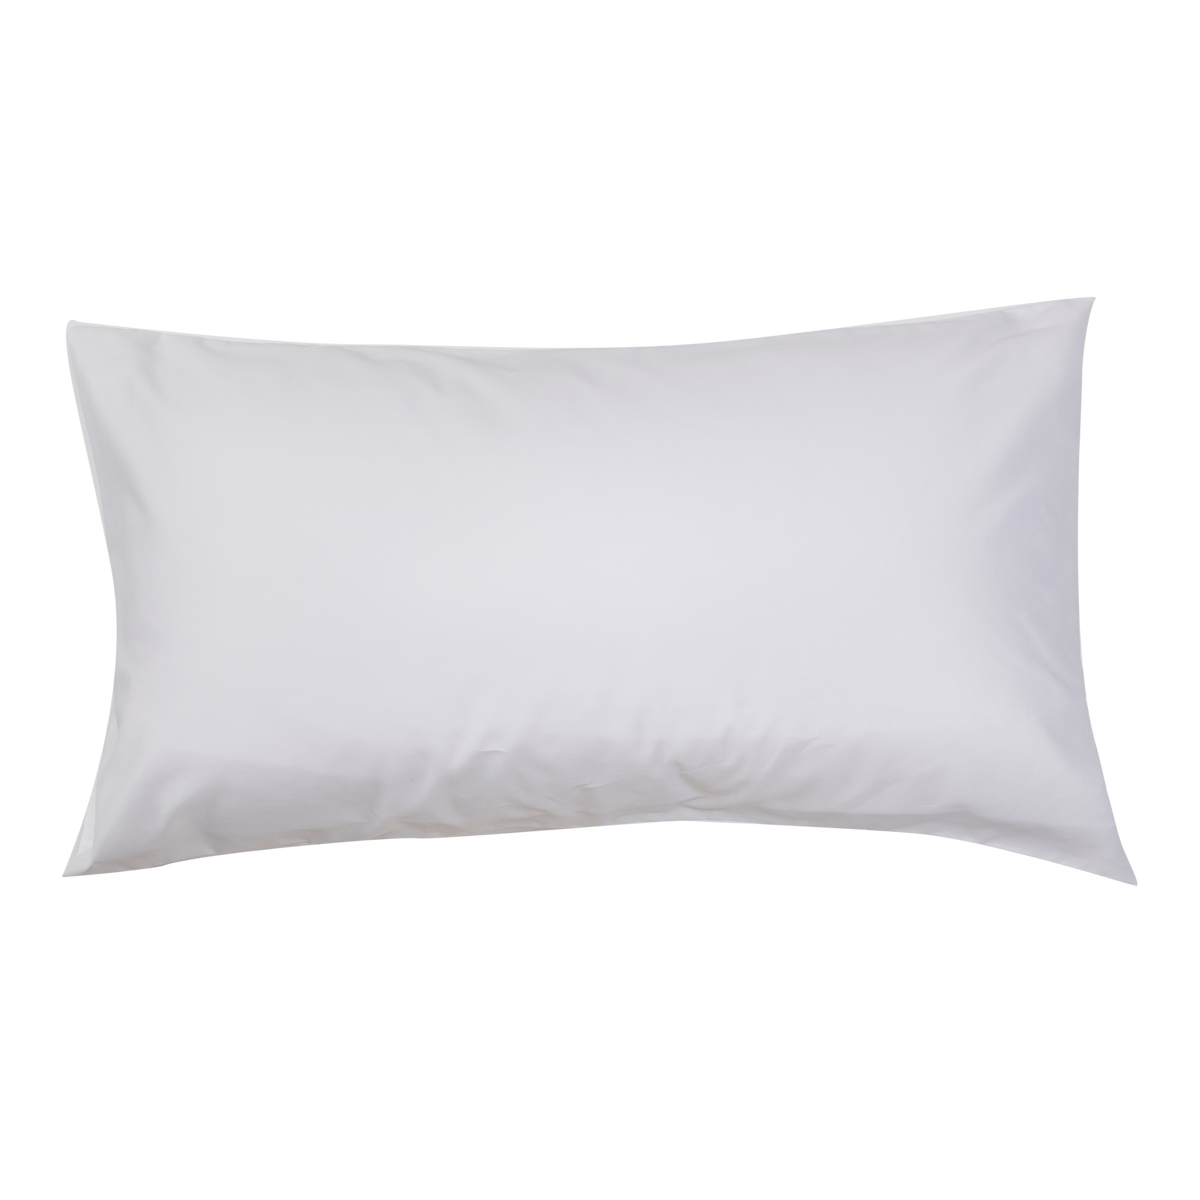 Essential Collection Percale Pillowcases in White | Skylark+Owl Linen Co.